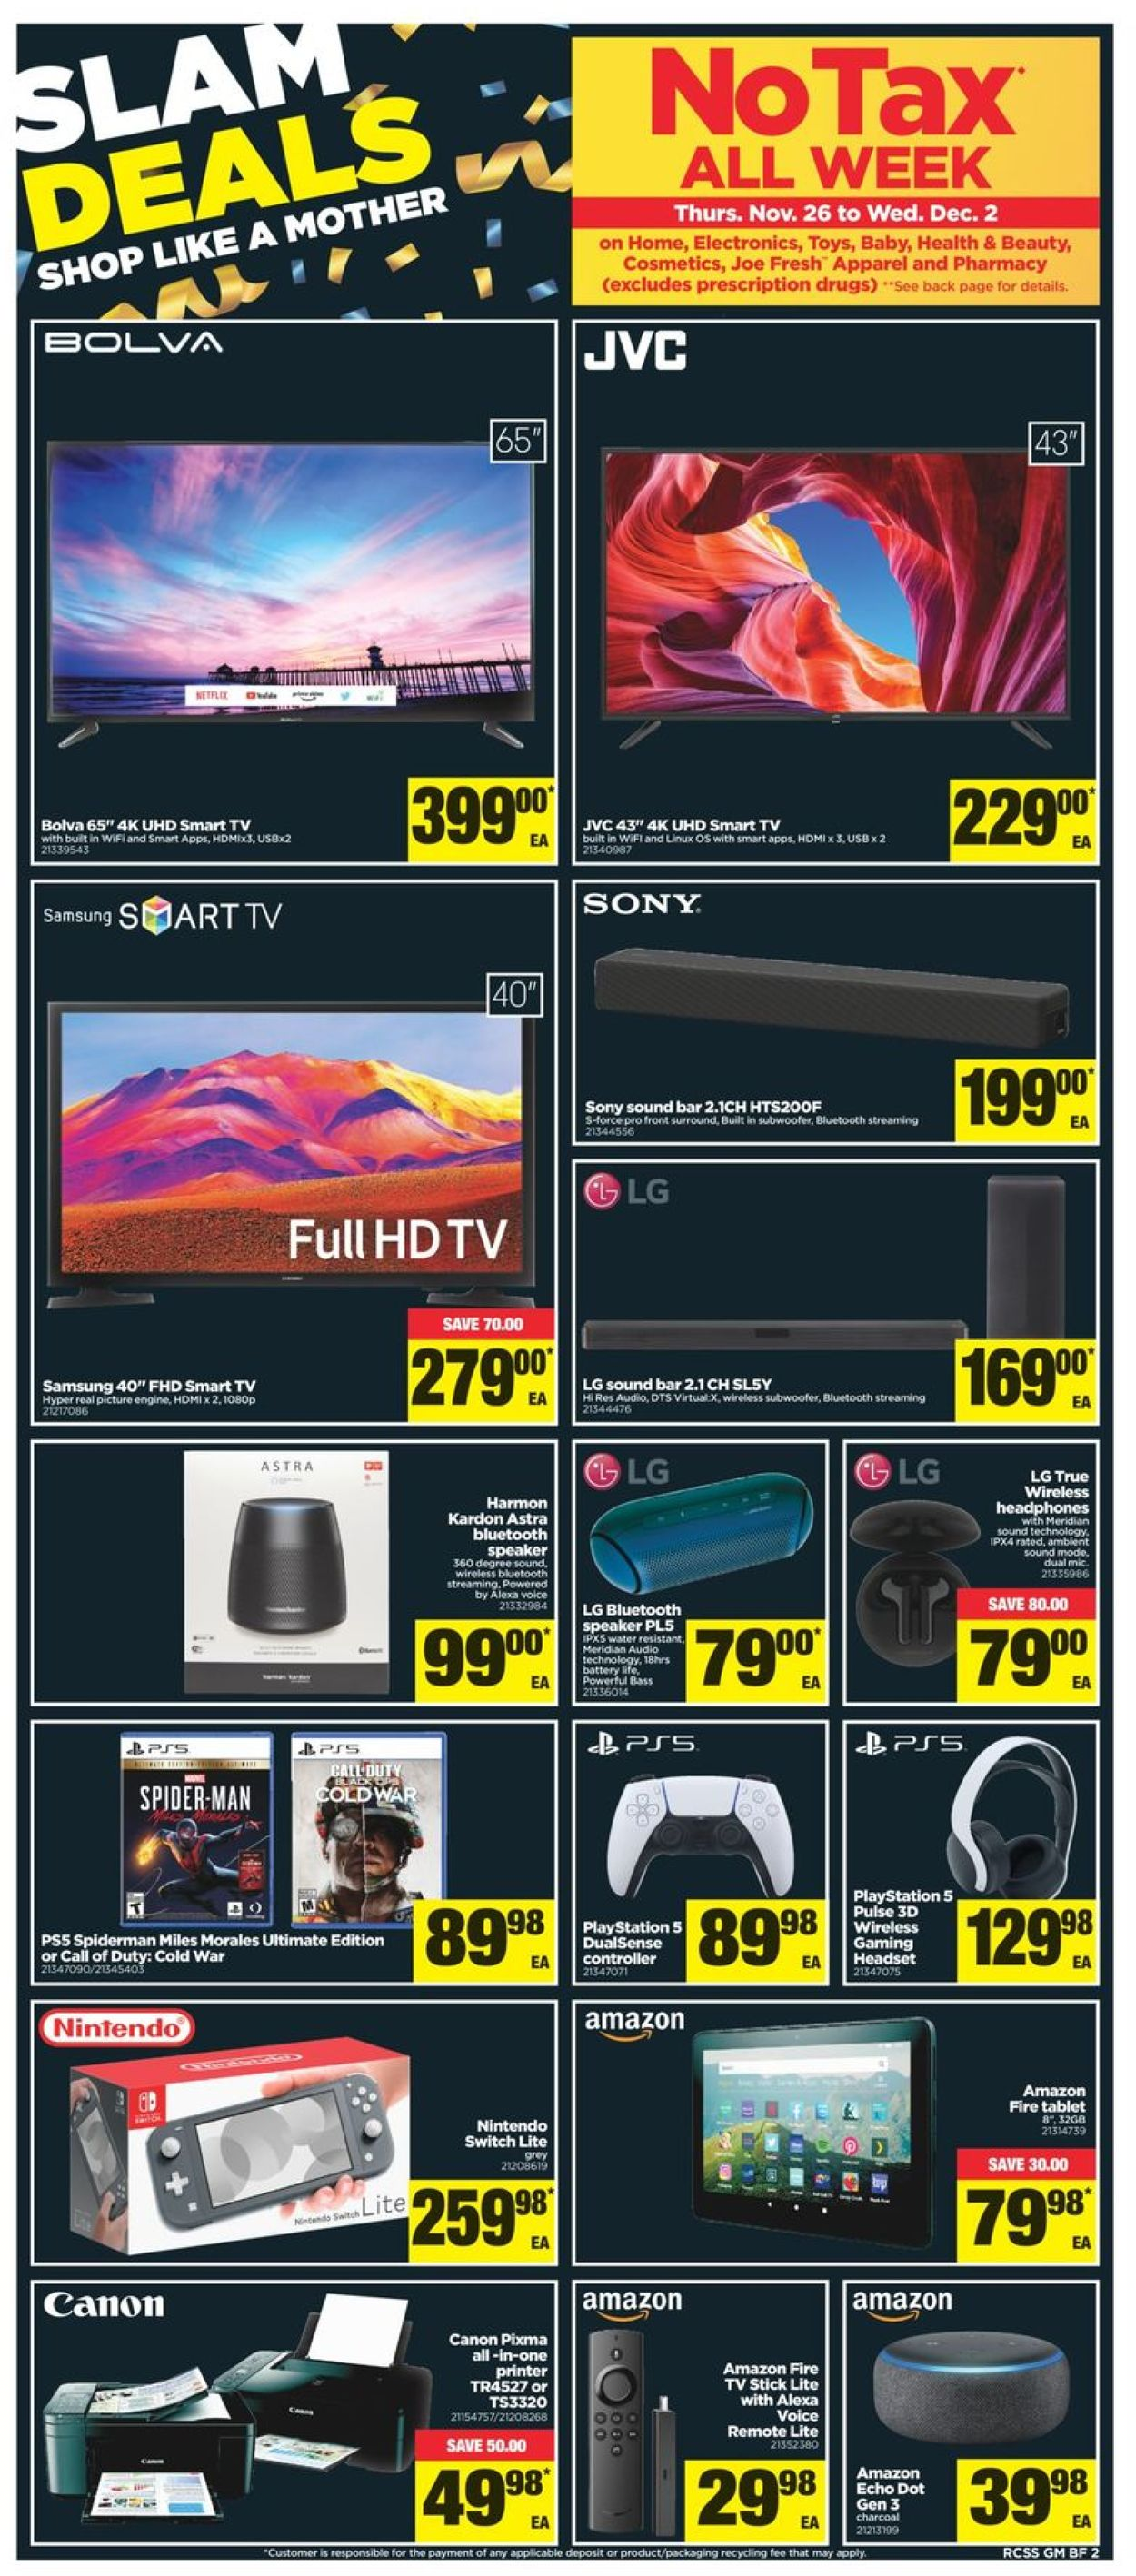 Real Canadian Superstore - Black Friday 2020 Flyer - 11/26-12/02/2020 (Page 3)